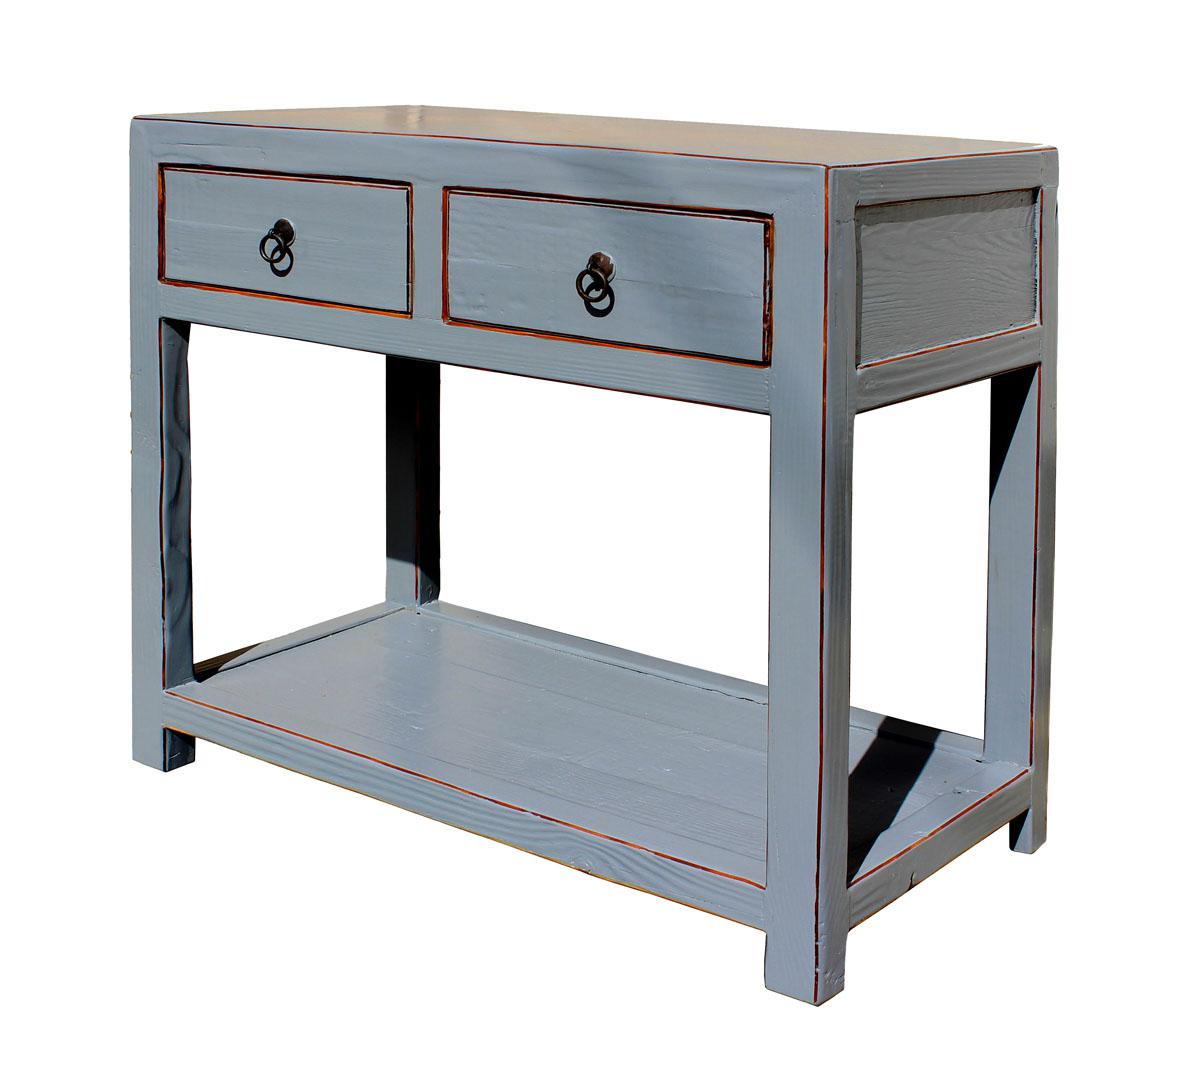 Charmant This Is A Simple Gray Color Finish Raw Wood Table With 2 Storage Drawers  And Open